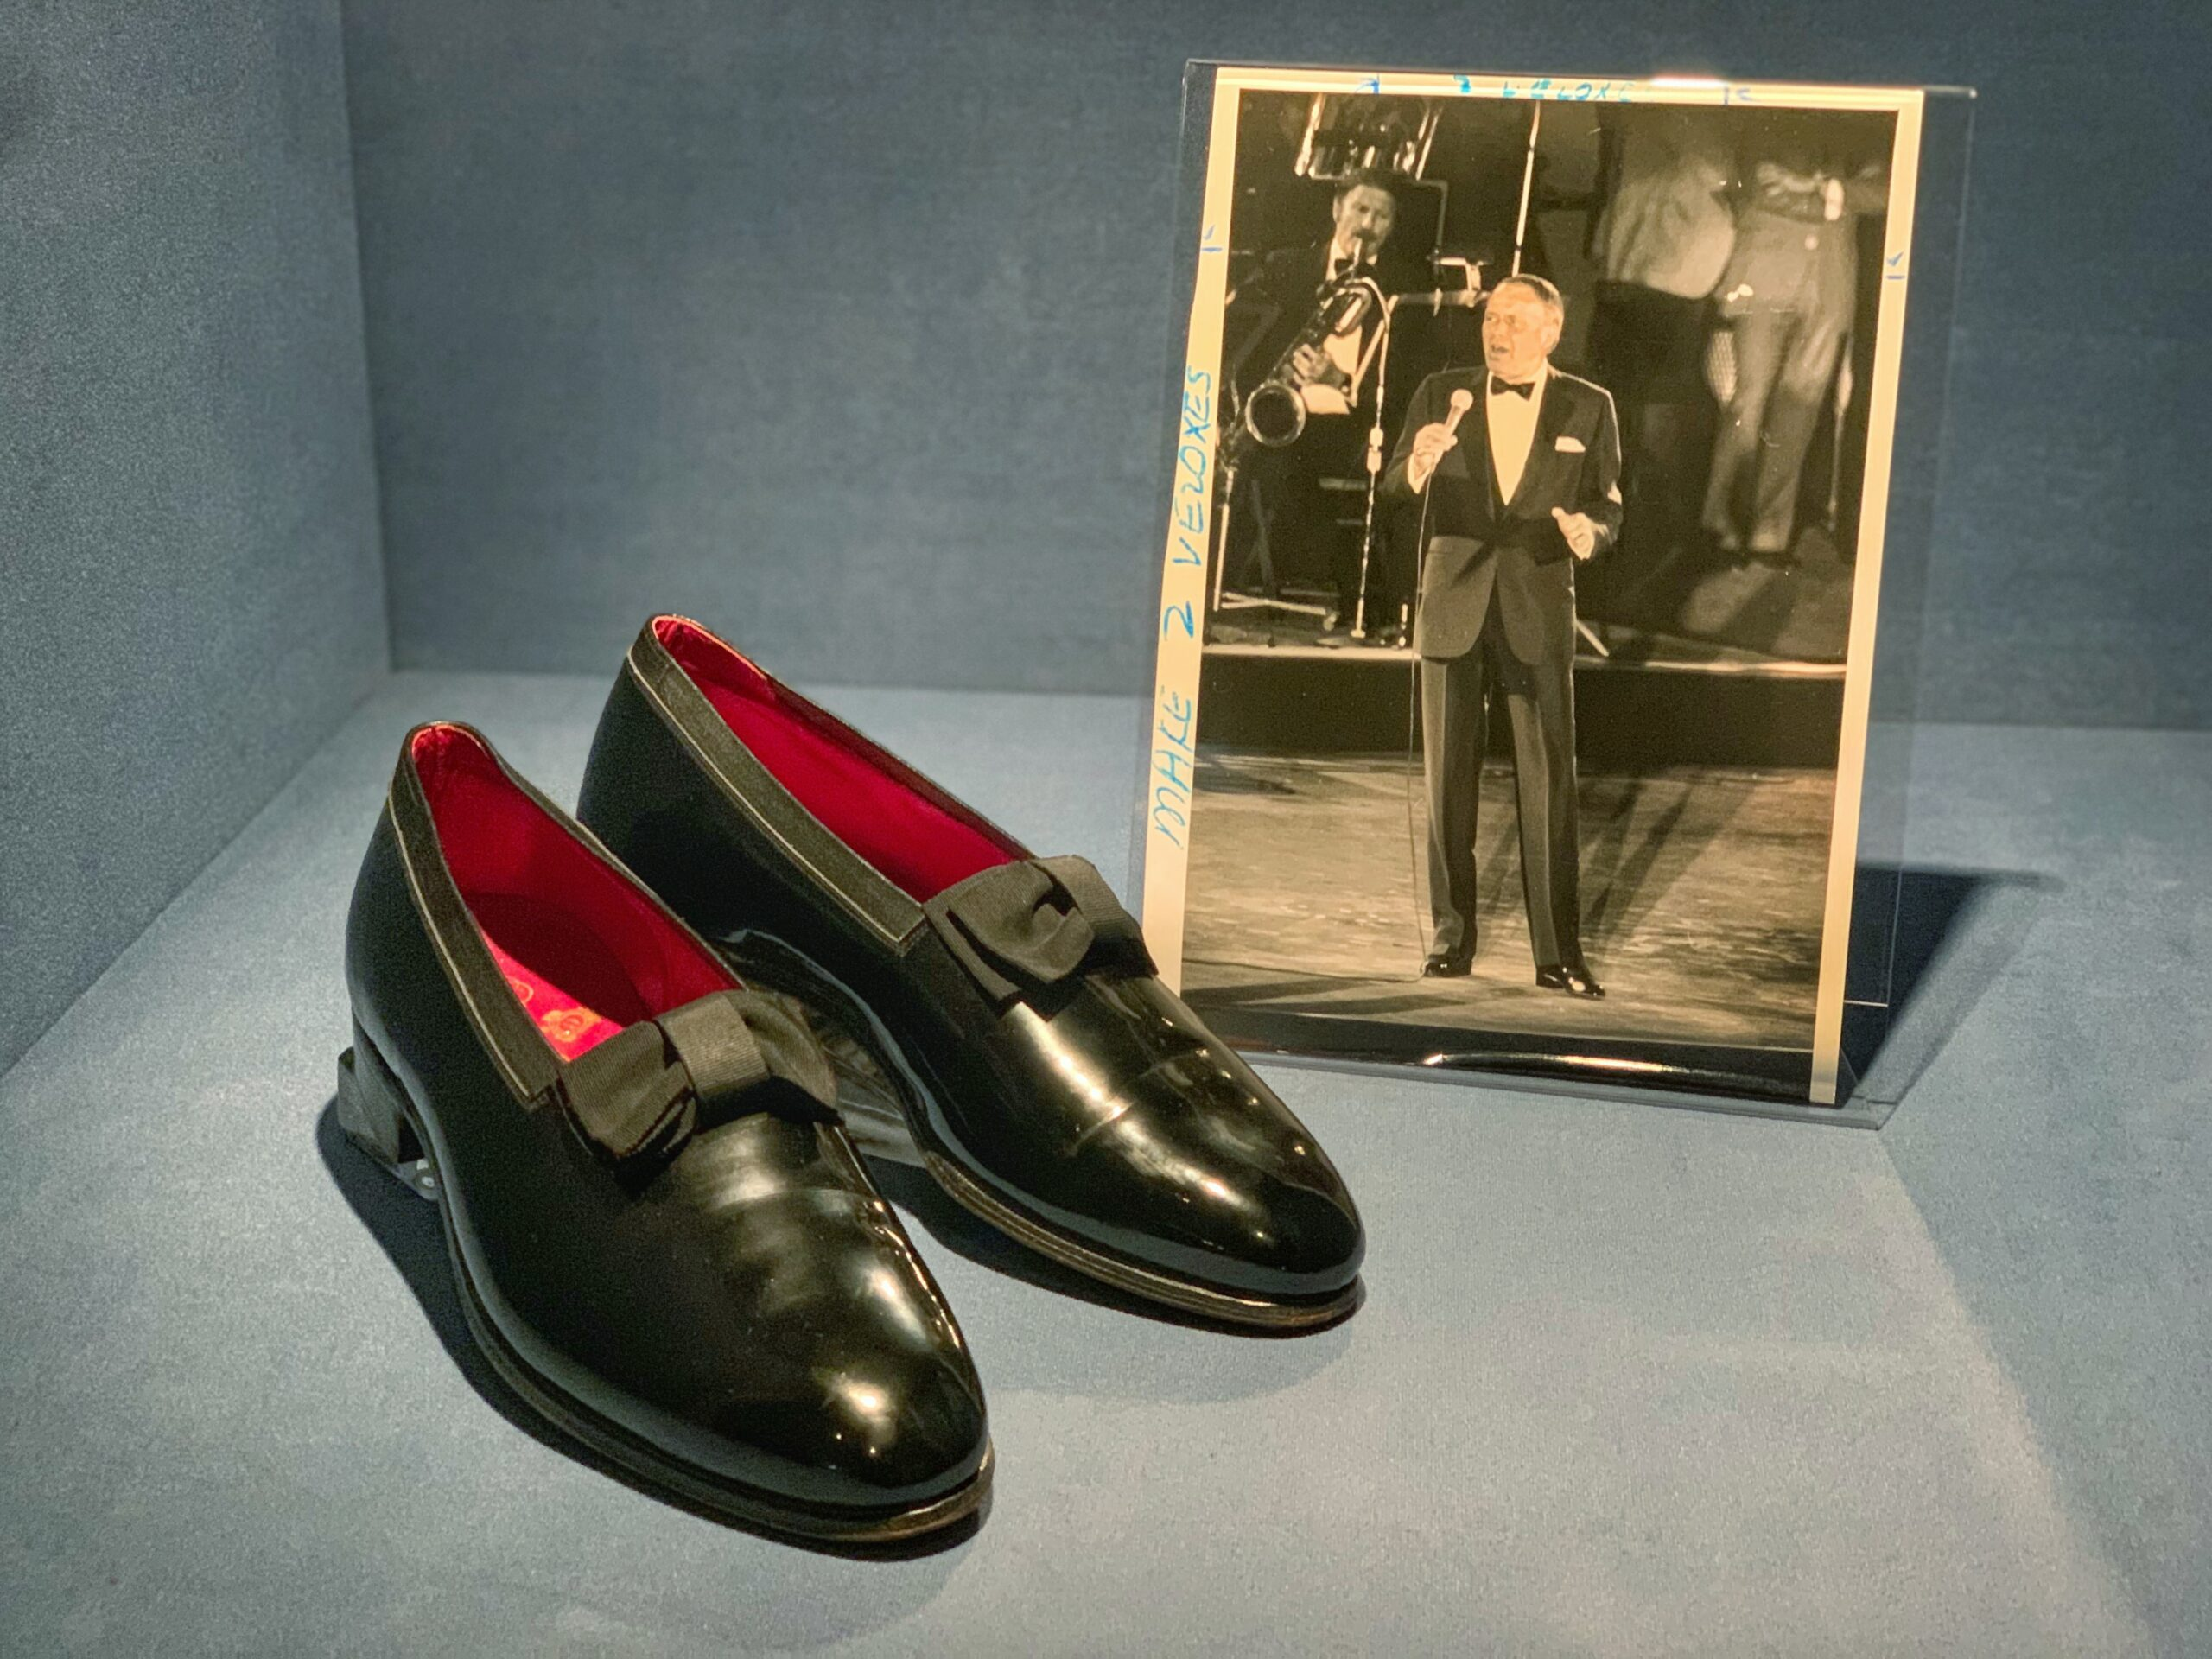 Patent leather shoes worn by Frank Sinatra